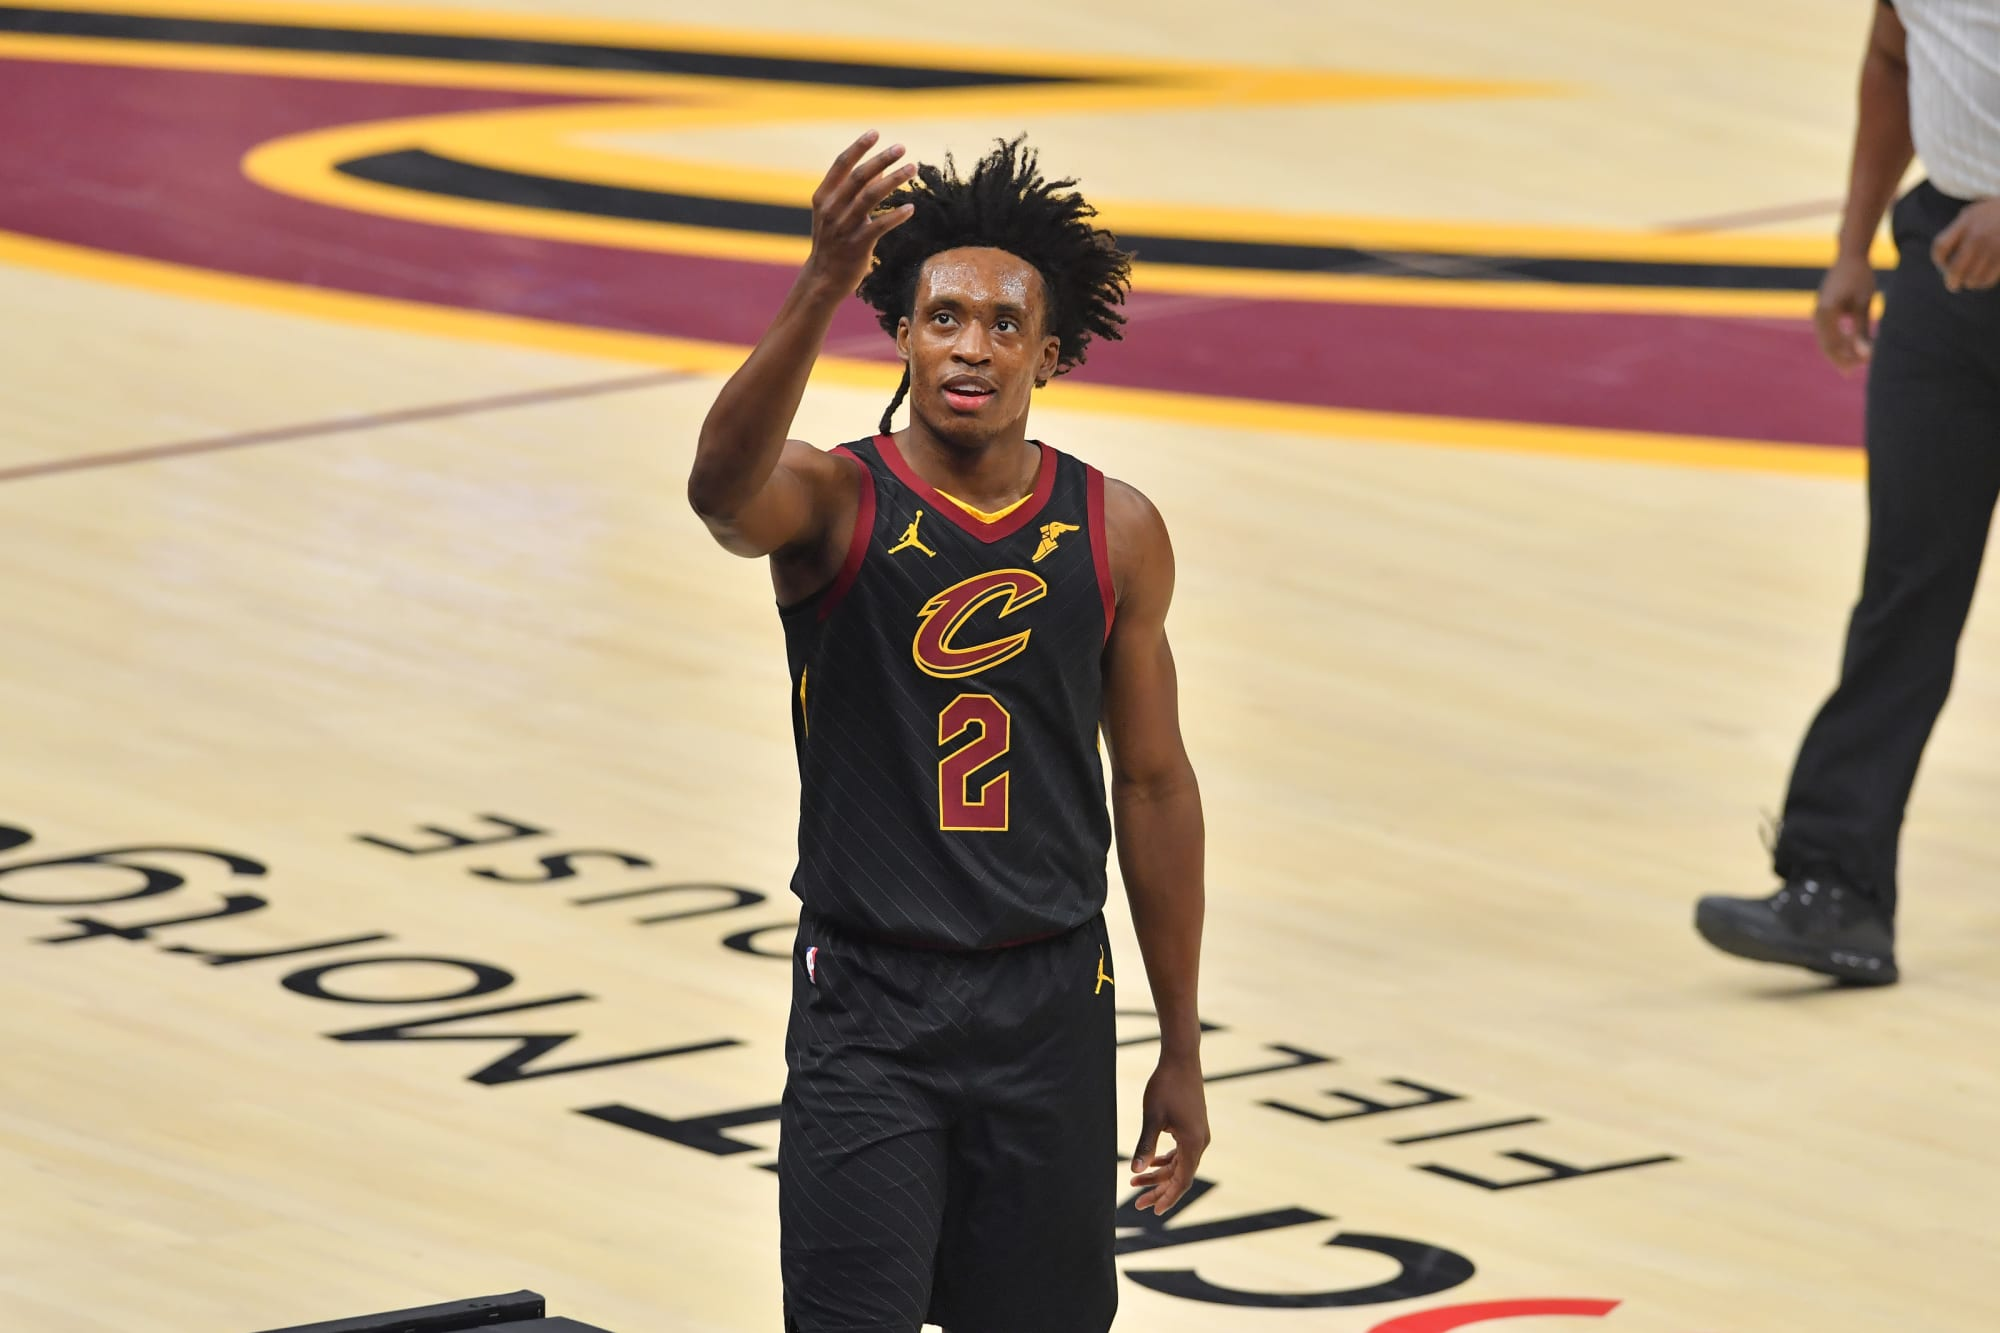 Toronto Raptors: 2 reasons to trade for Collin Sexton, and 1 reason not to